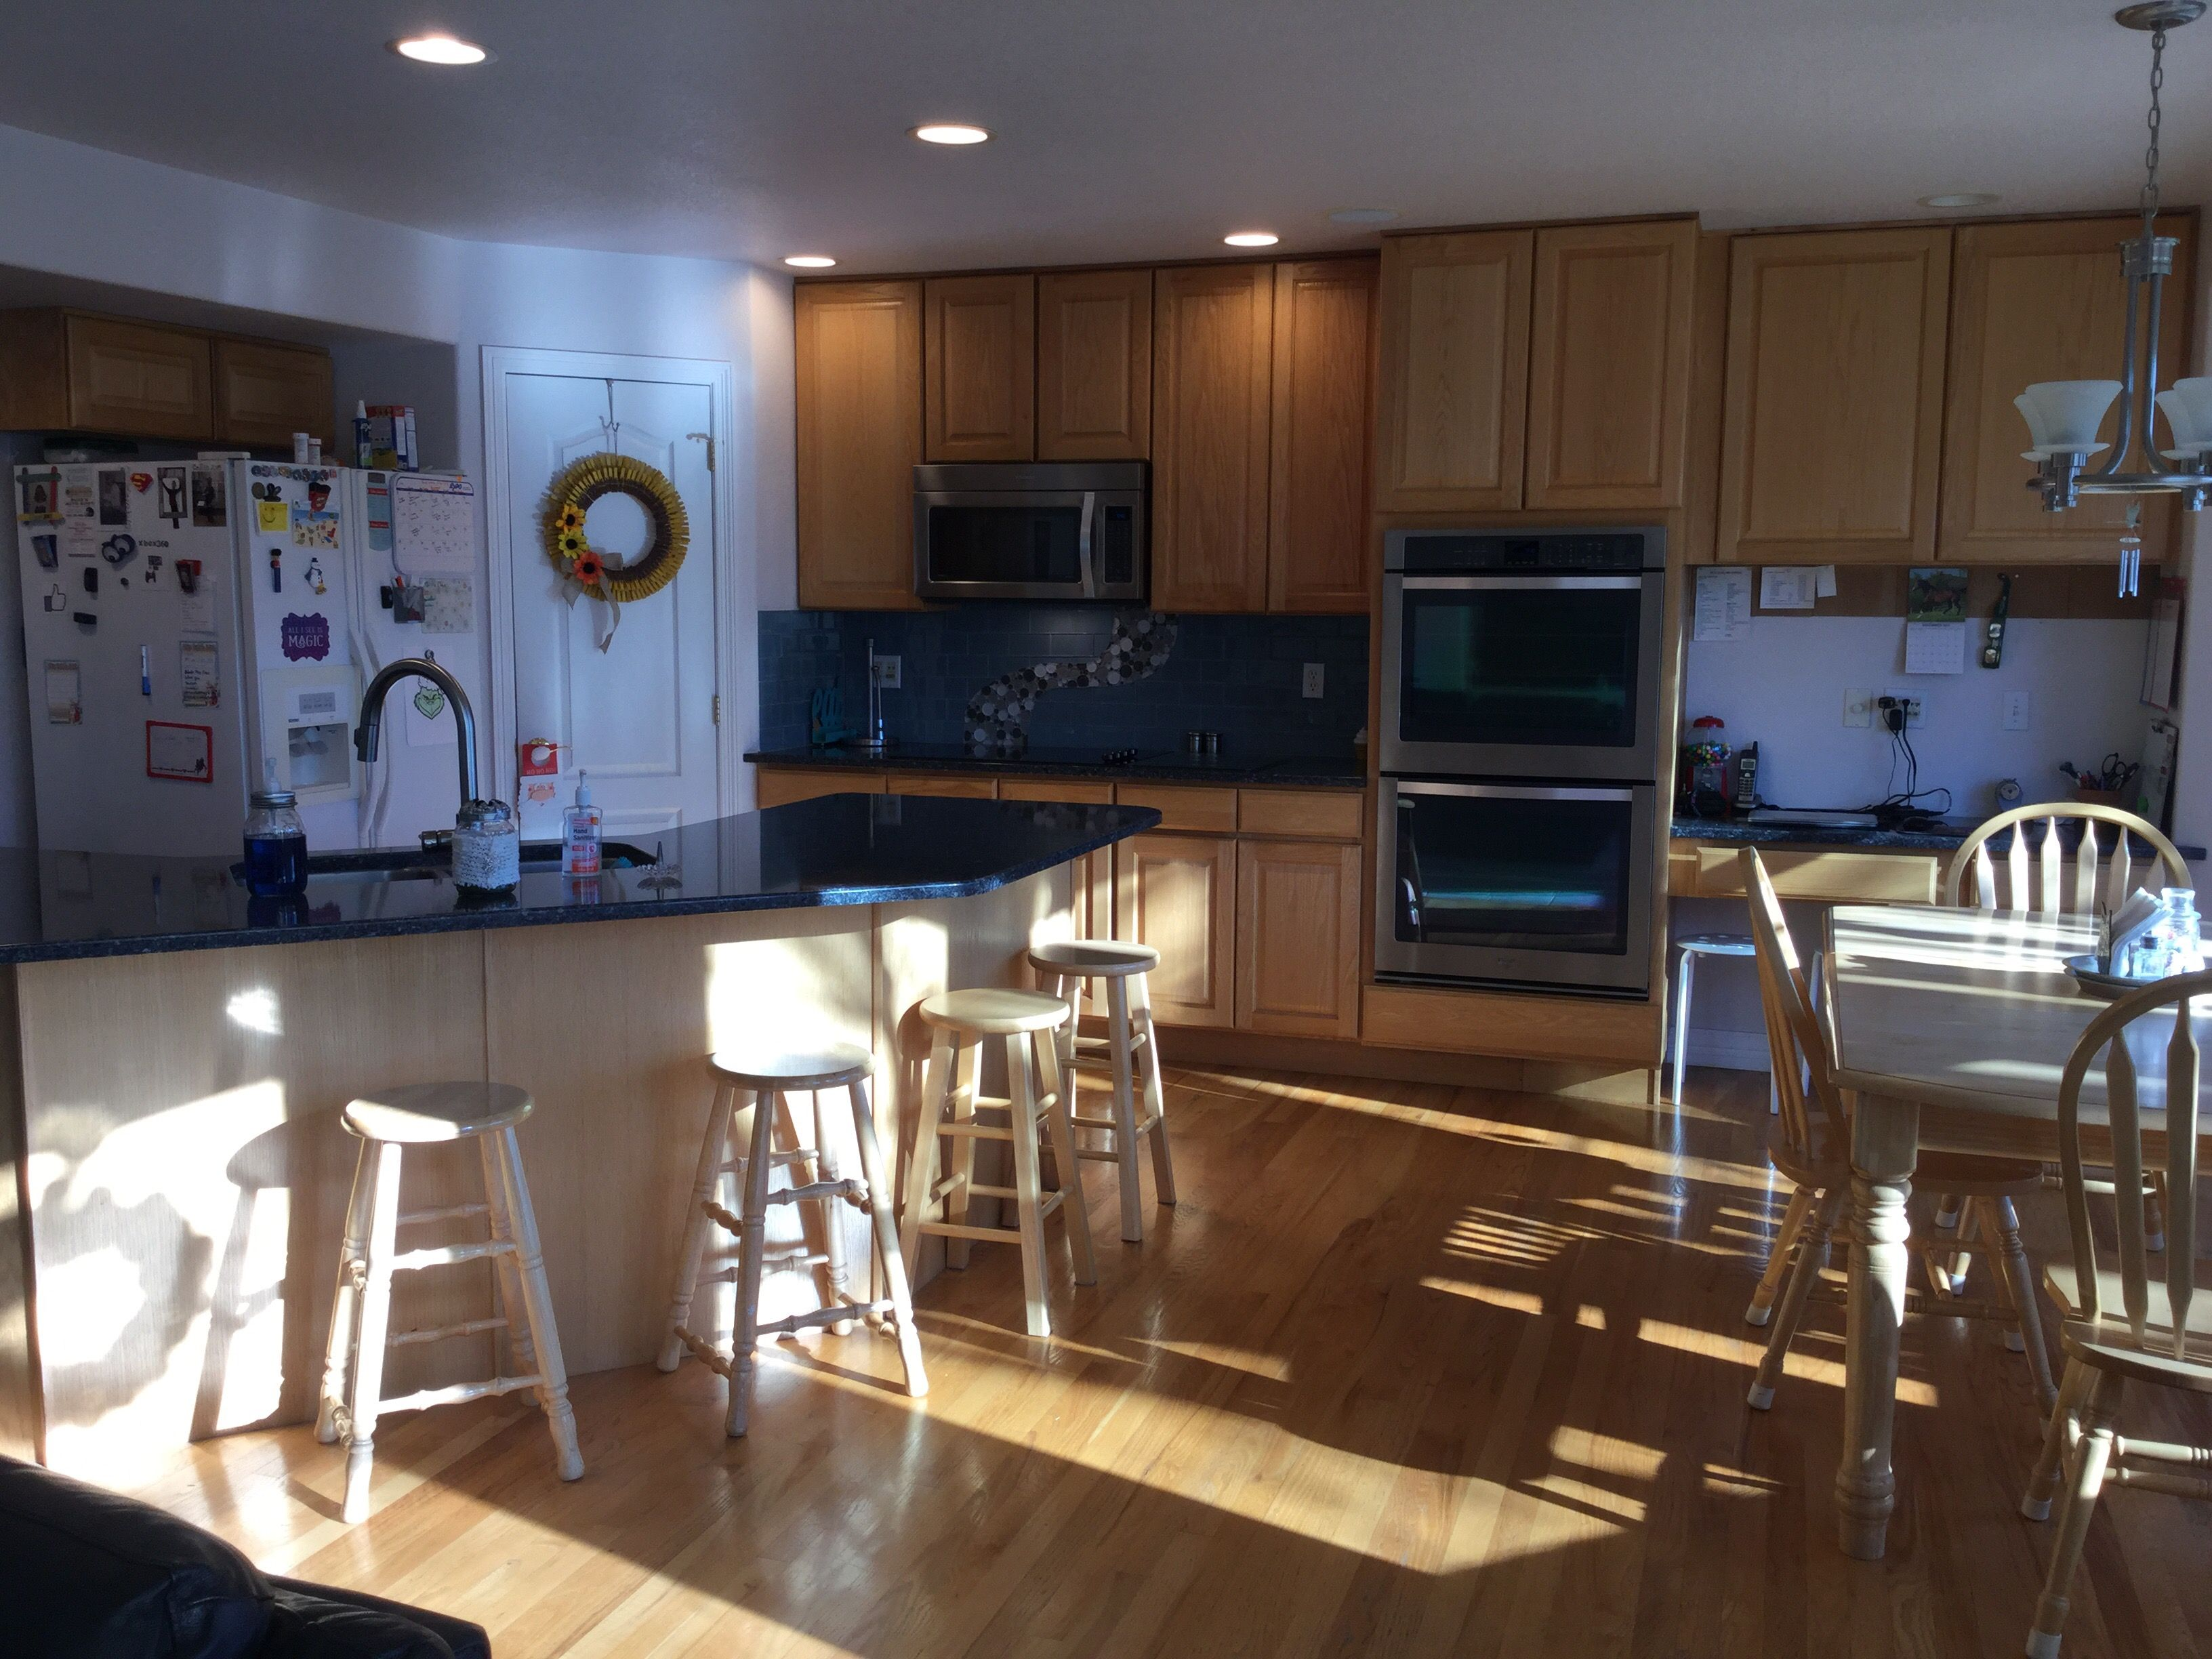 How To Clean Your Kitchen With Natural Products   Cleaning ...